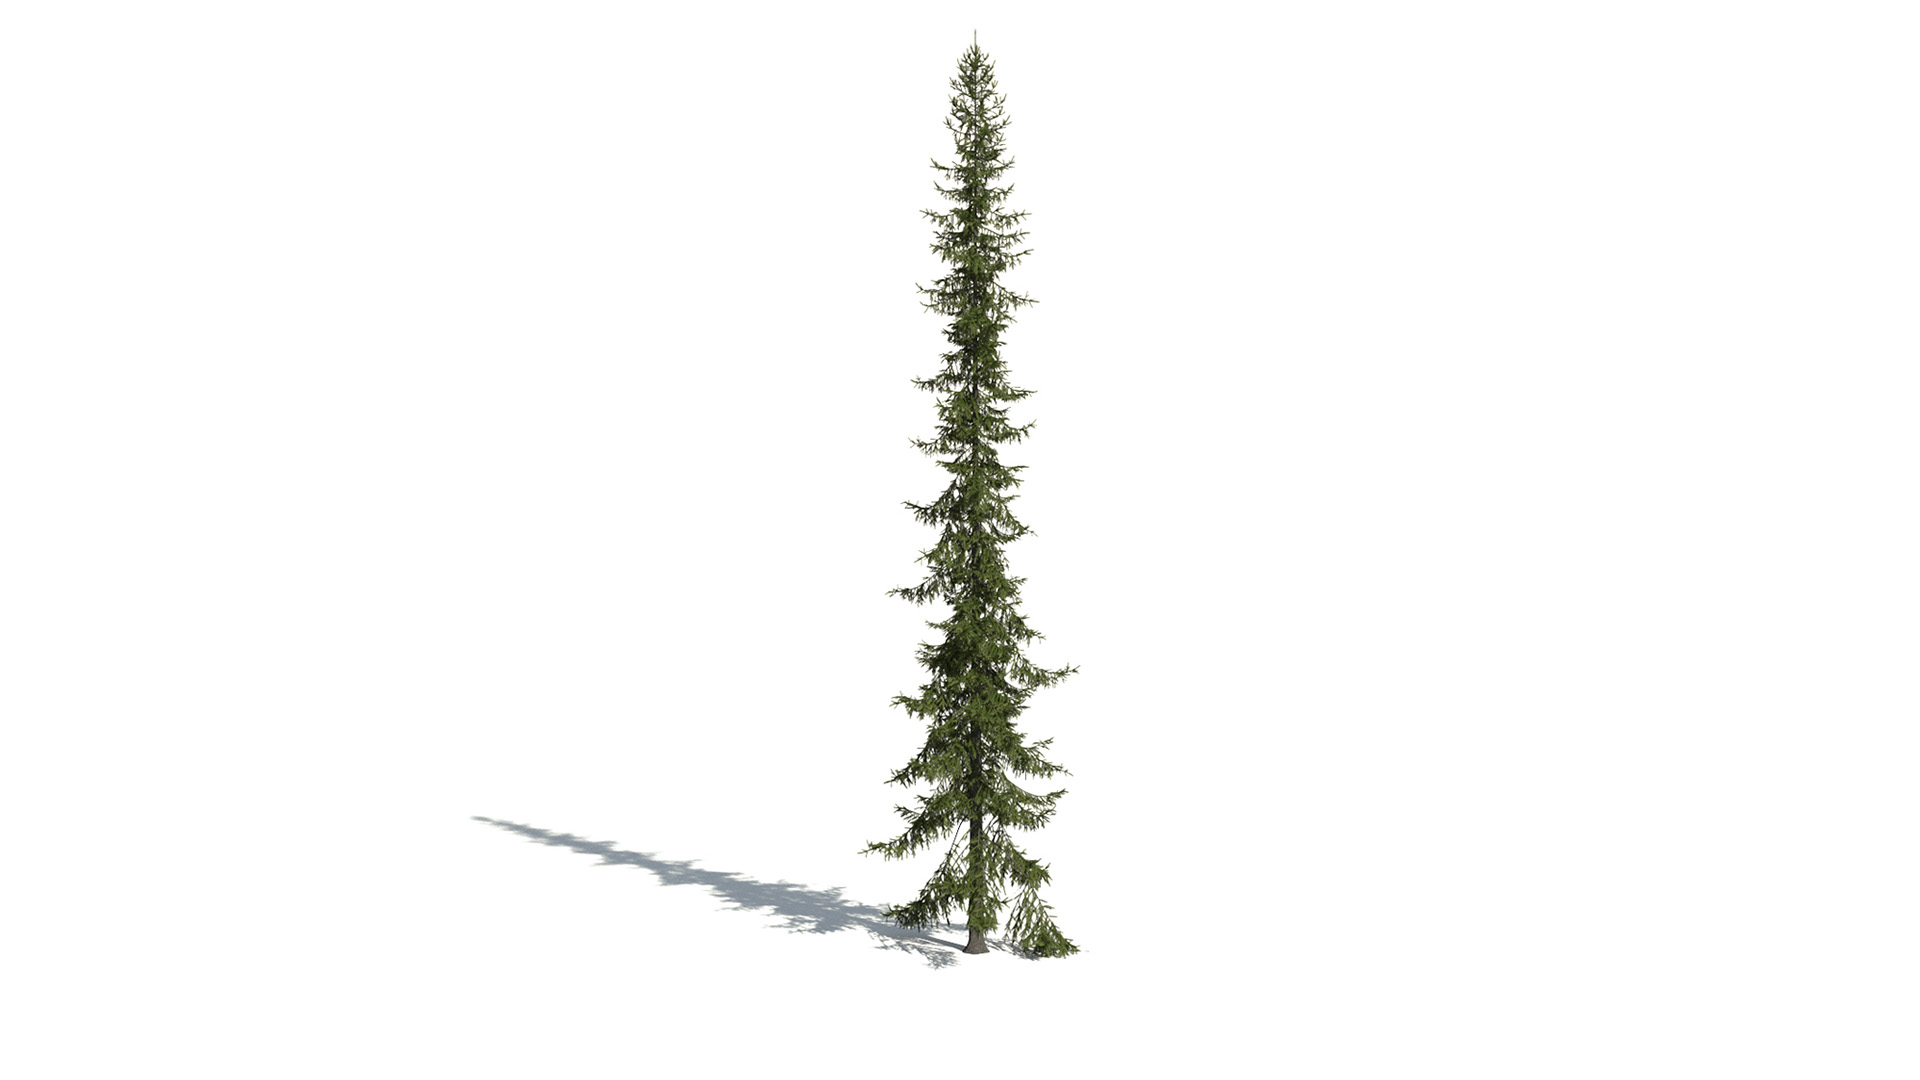 3D model of the Black spruce Picea mariana